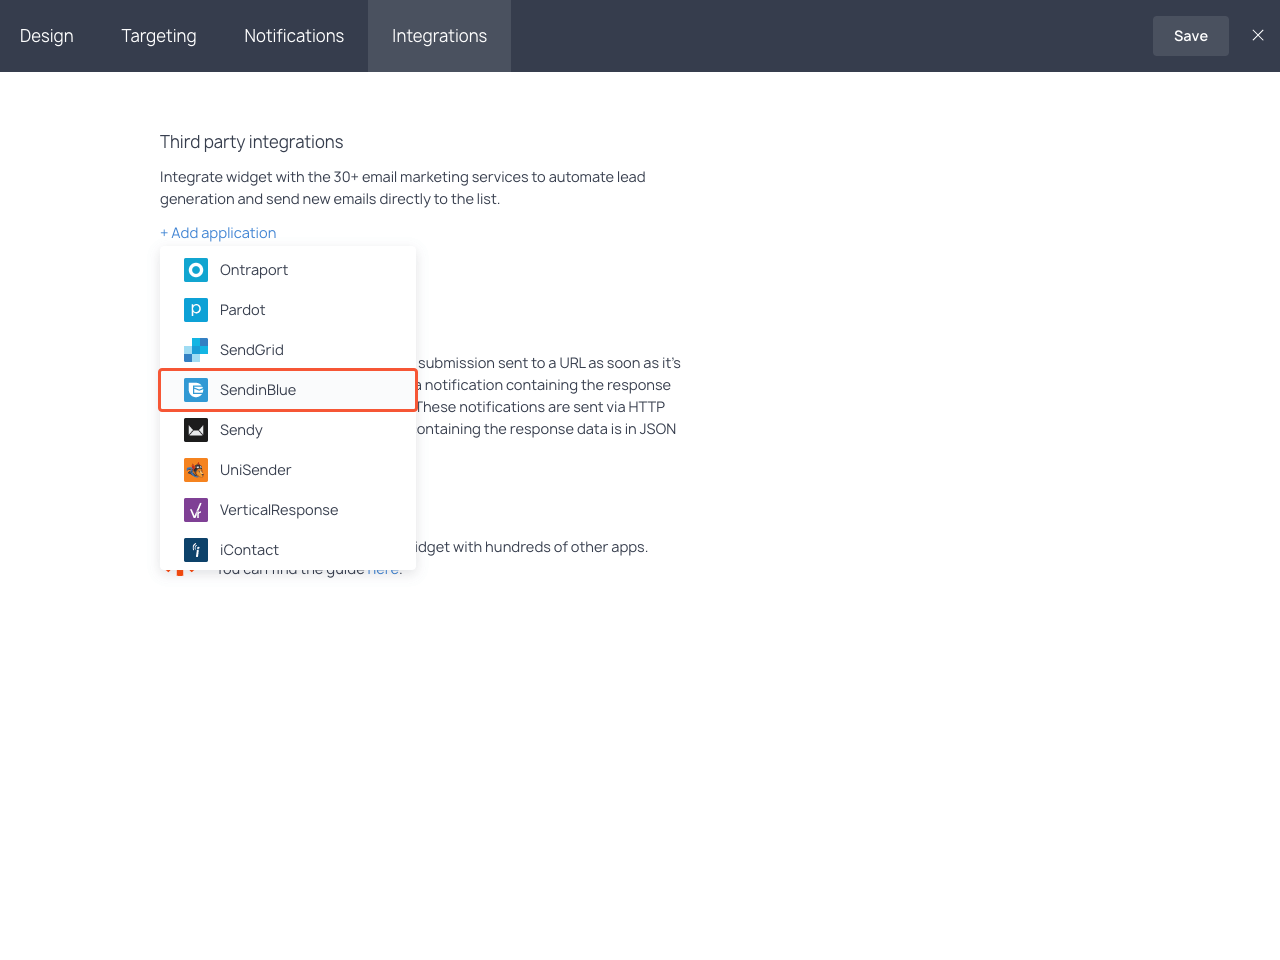 Integrations section with the highlighted SendinBlue item in the dropdown list